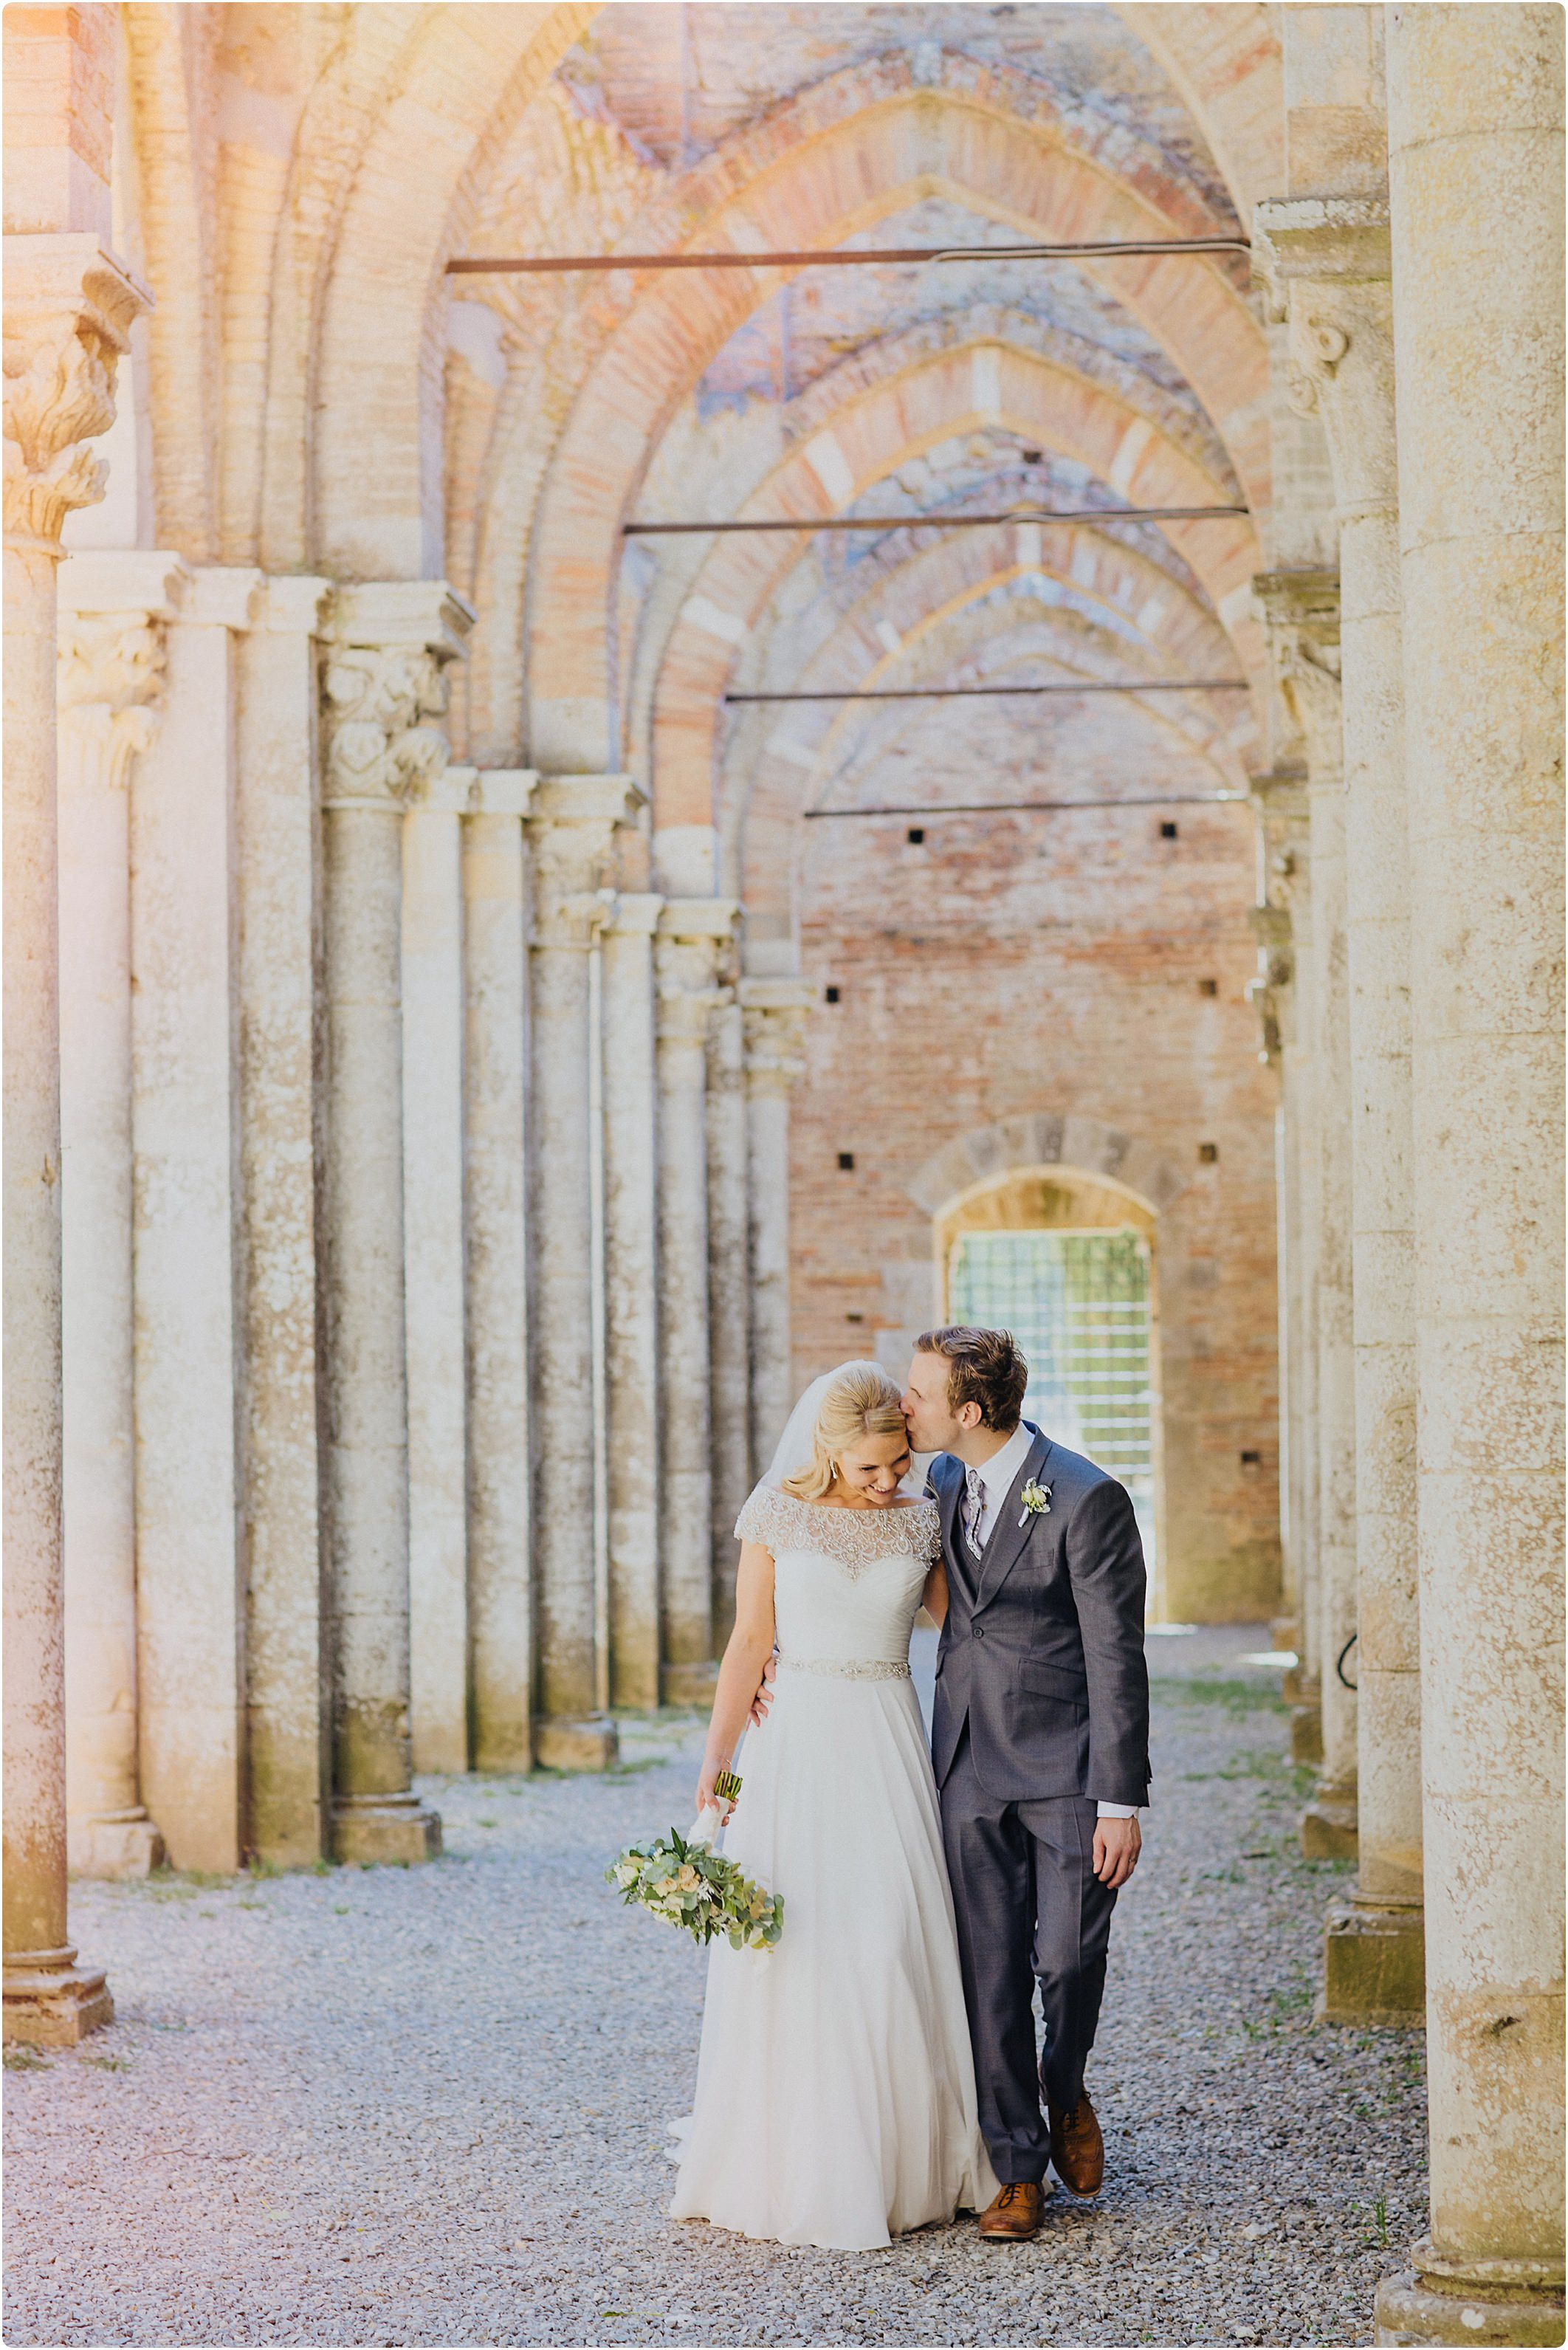 bride and groom walking together at a san galgano abbey wedding